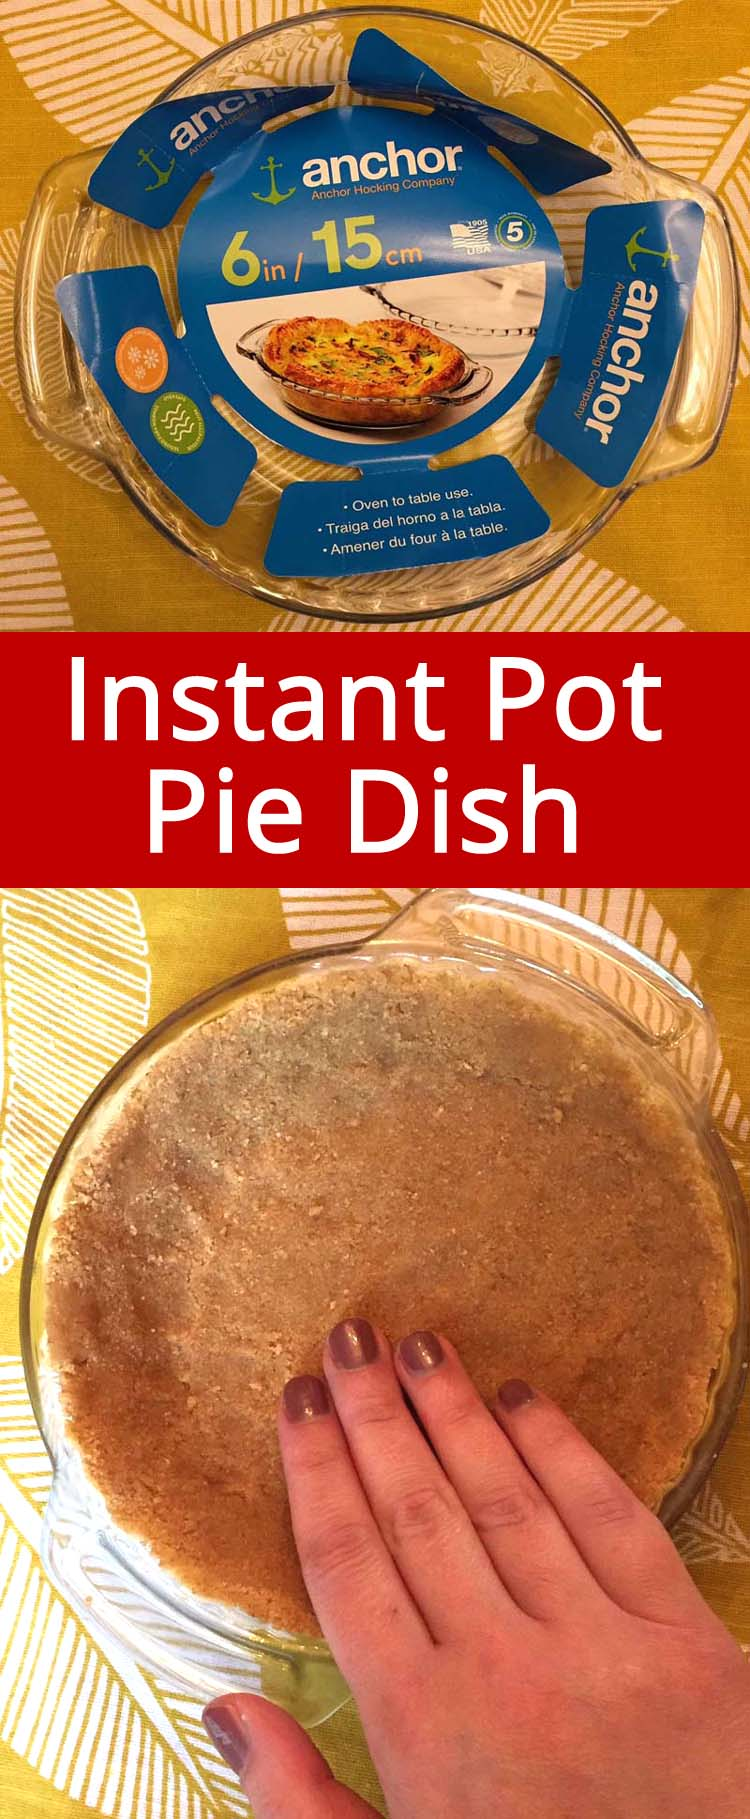 If you want to make pies in the Instant Pot in a classic pie dish, this Instant Pot pie dish is exactly what you need!  It fits inside the Instant Pot perfectly!